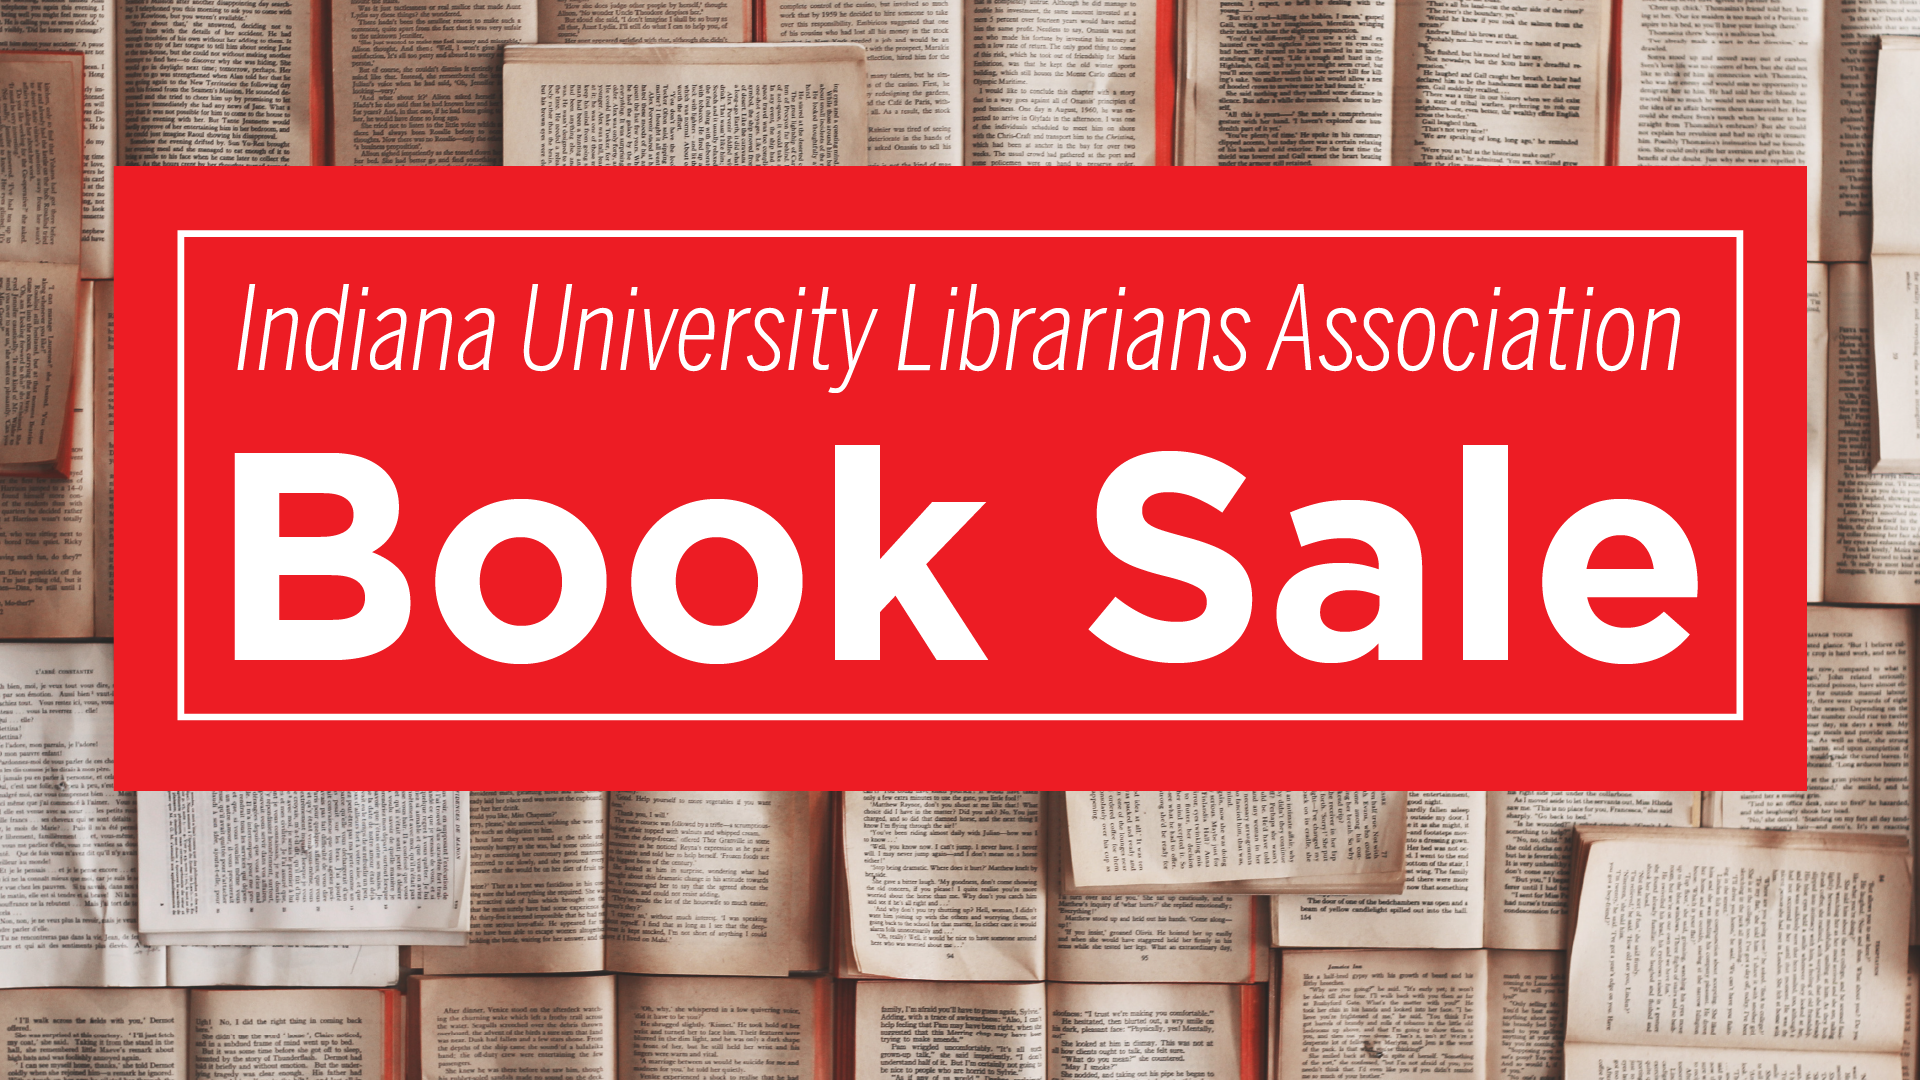 Indiana University Librarians Association Book Sale